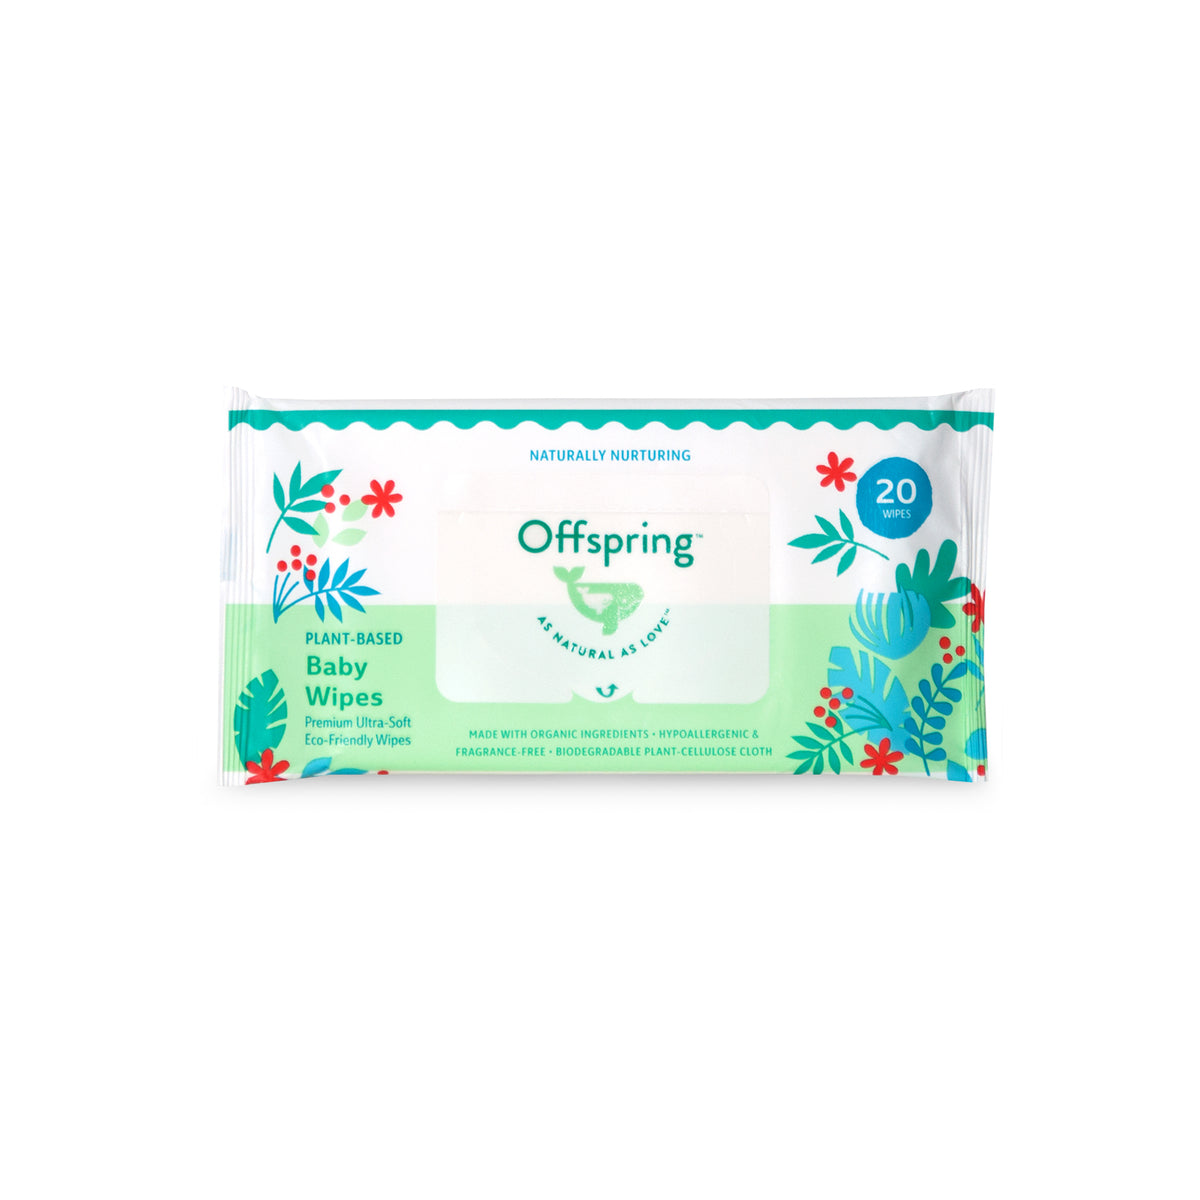 Offspring Baby Wipes 20ct